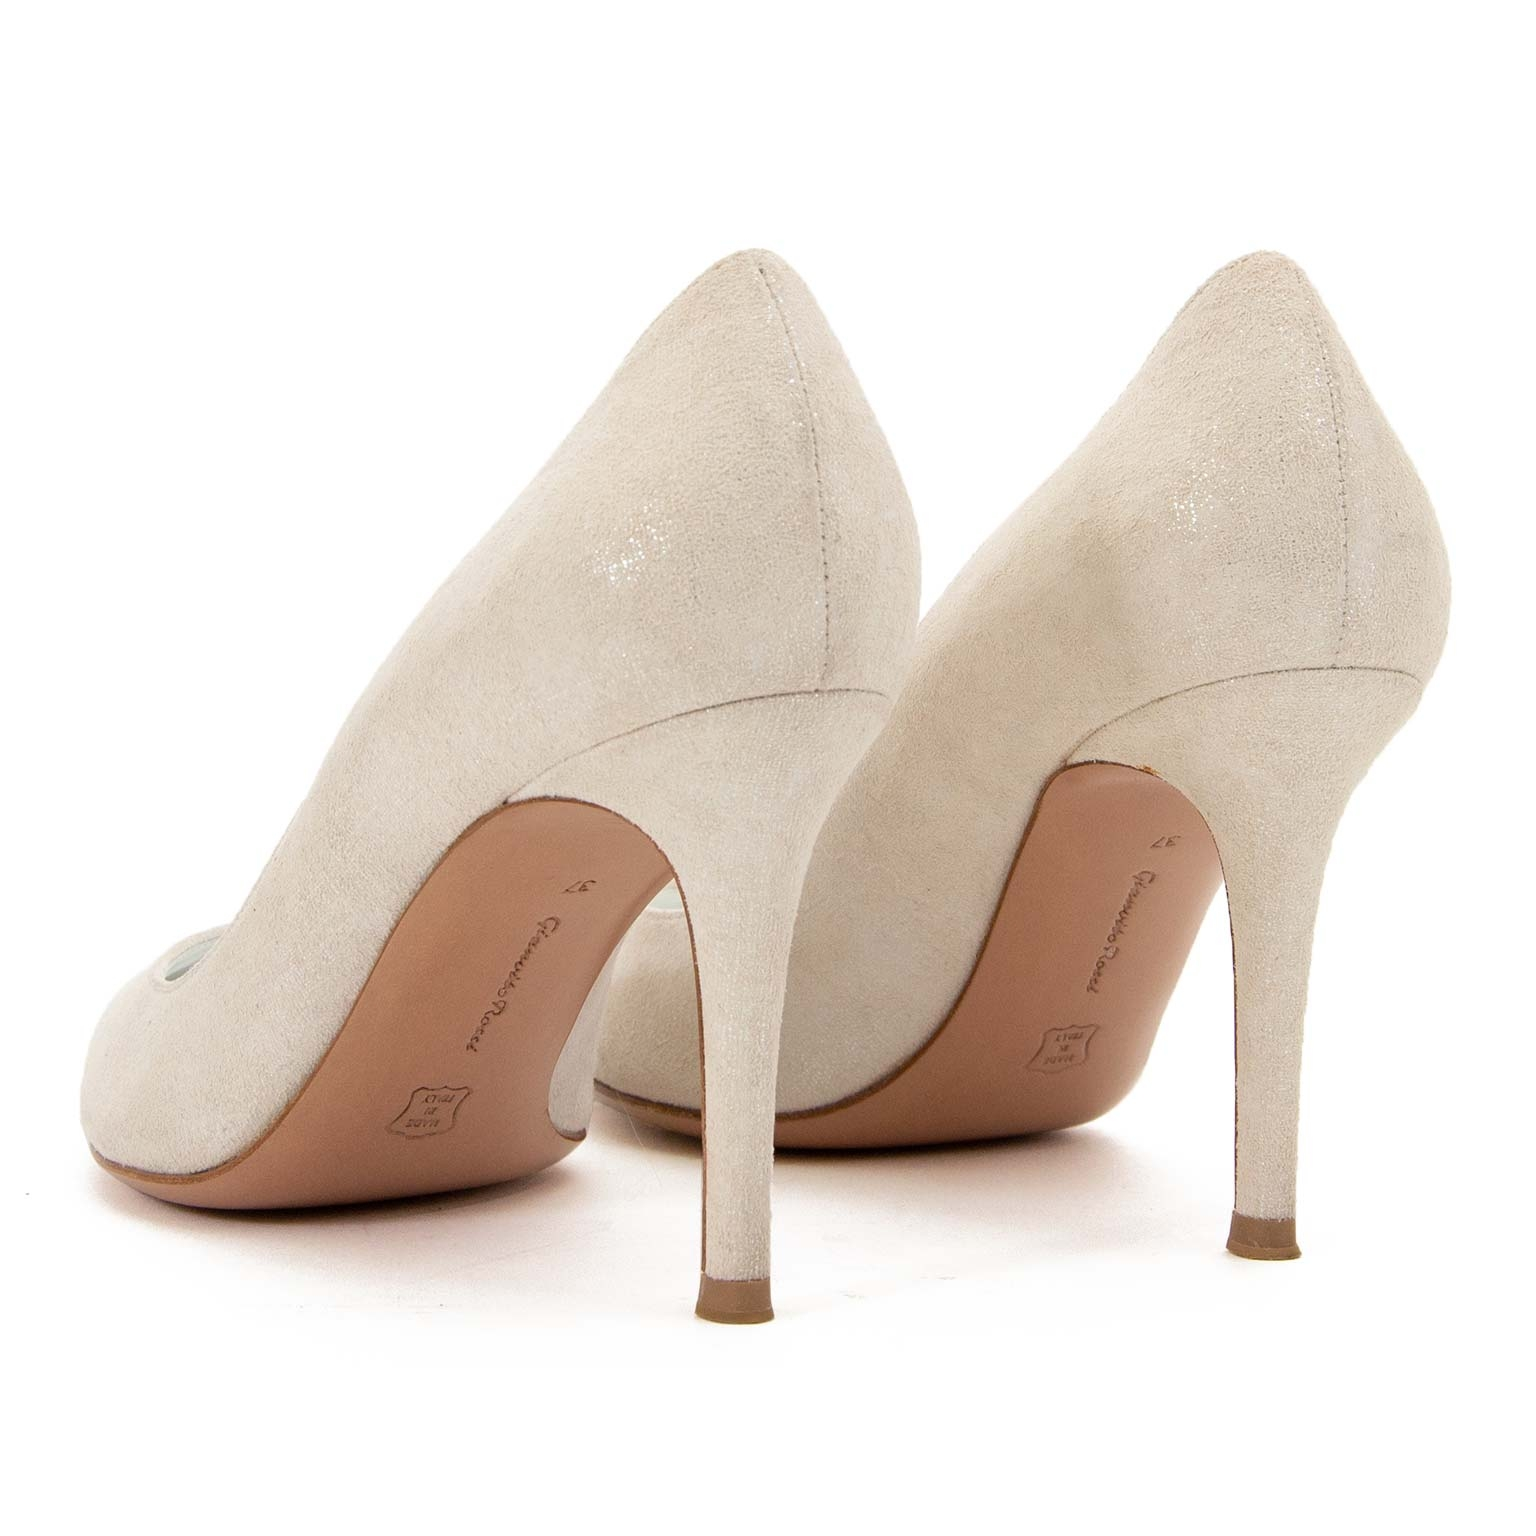 buy safe online second hand Gianvito Rossi White Shiny Suede Pumps - Size 37 at labellov antwerp for the best price